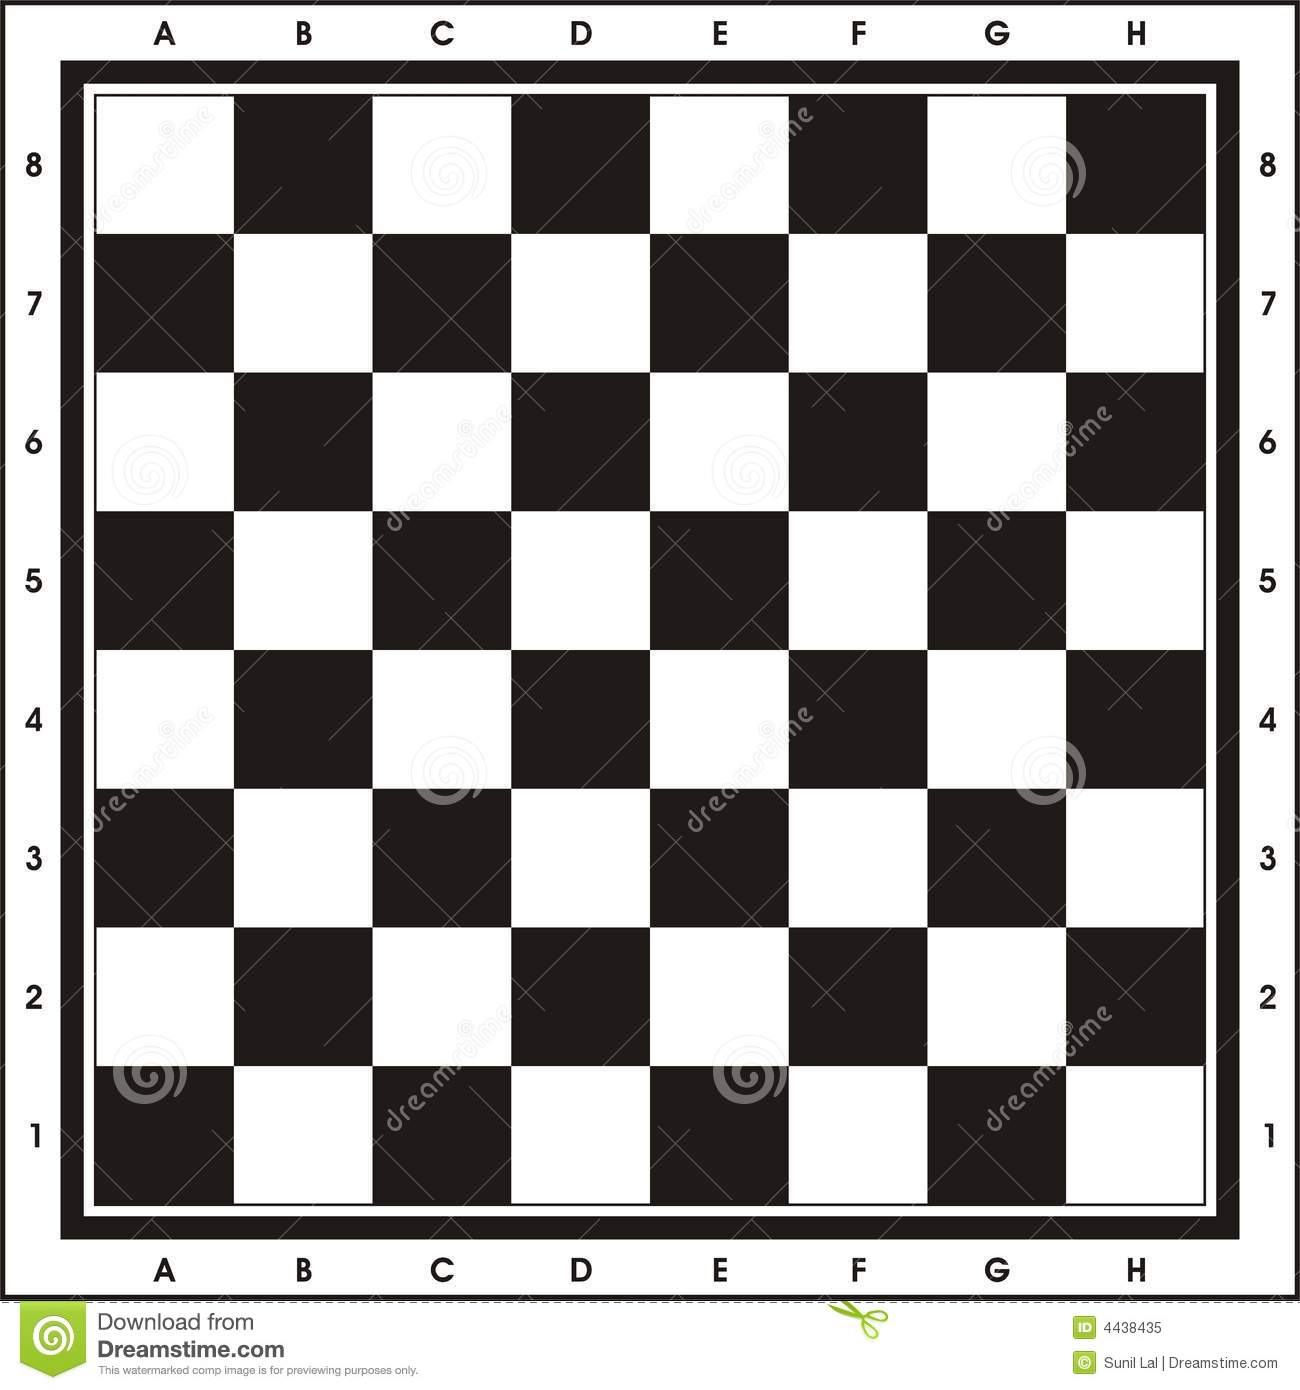 image relating to Chess Board Printable named Chess Board - Print Engage in inventory case in point. Instance